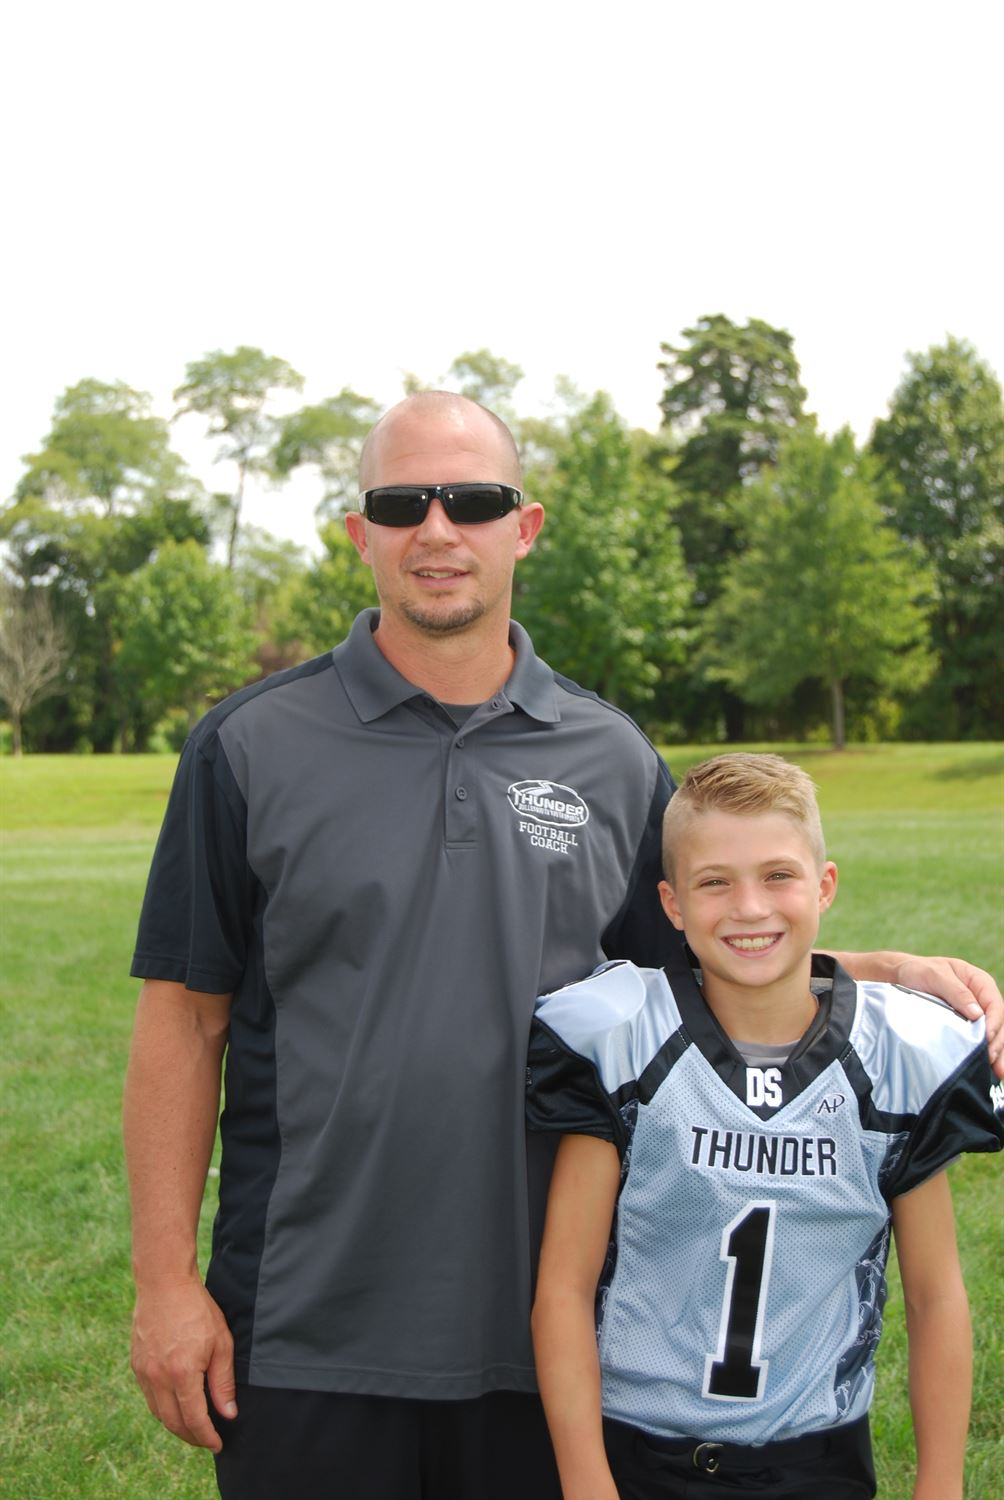 Dulles South Youth Sports - Thunder 80N1 - Peterson